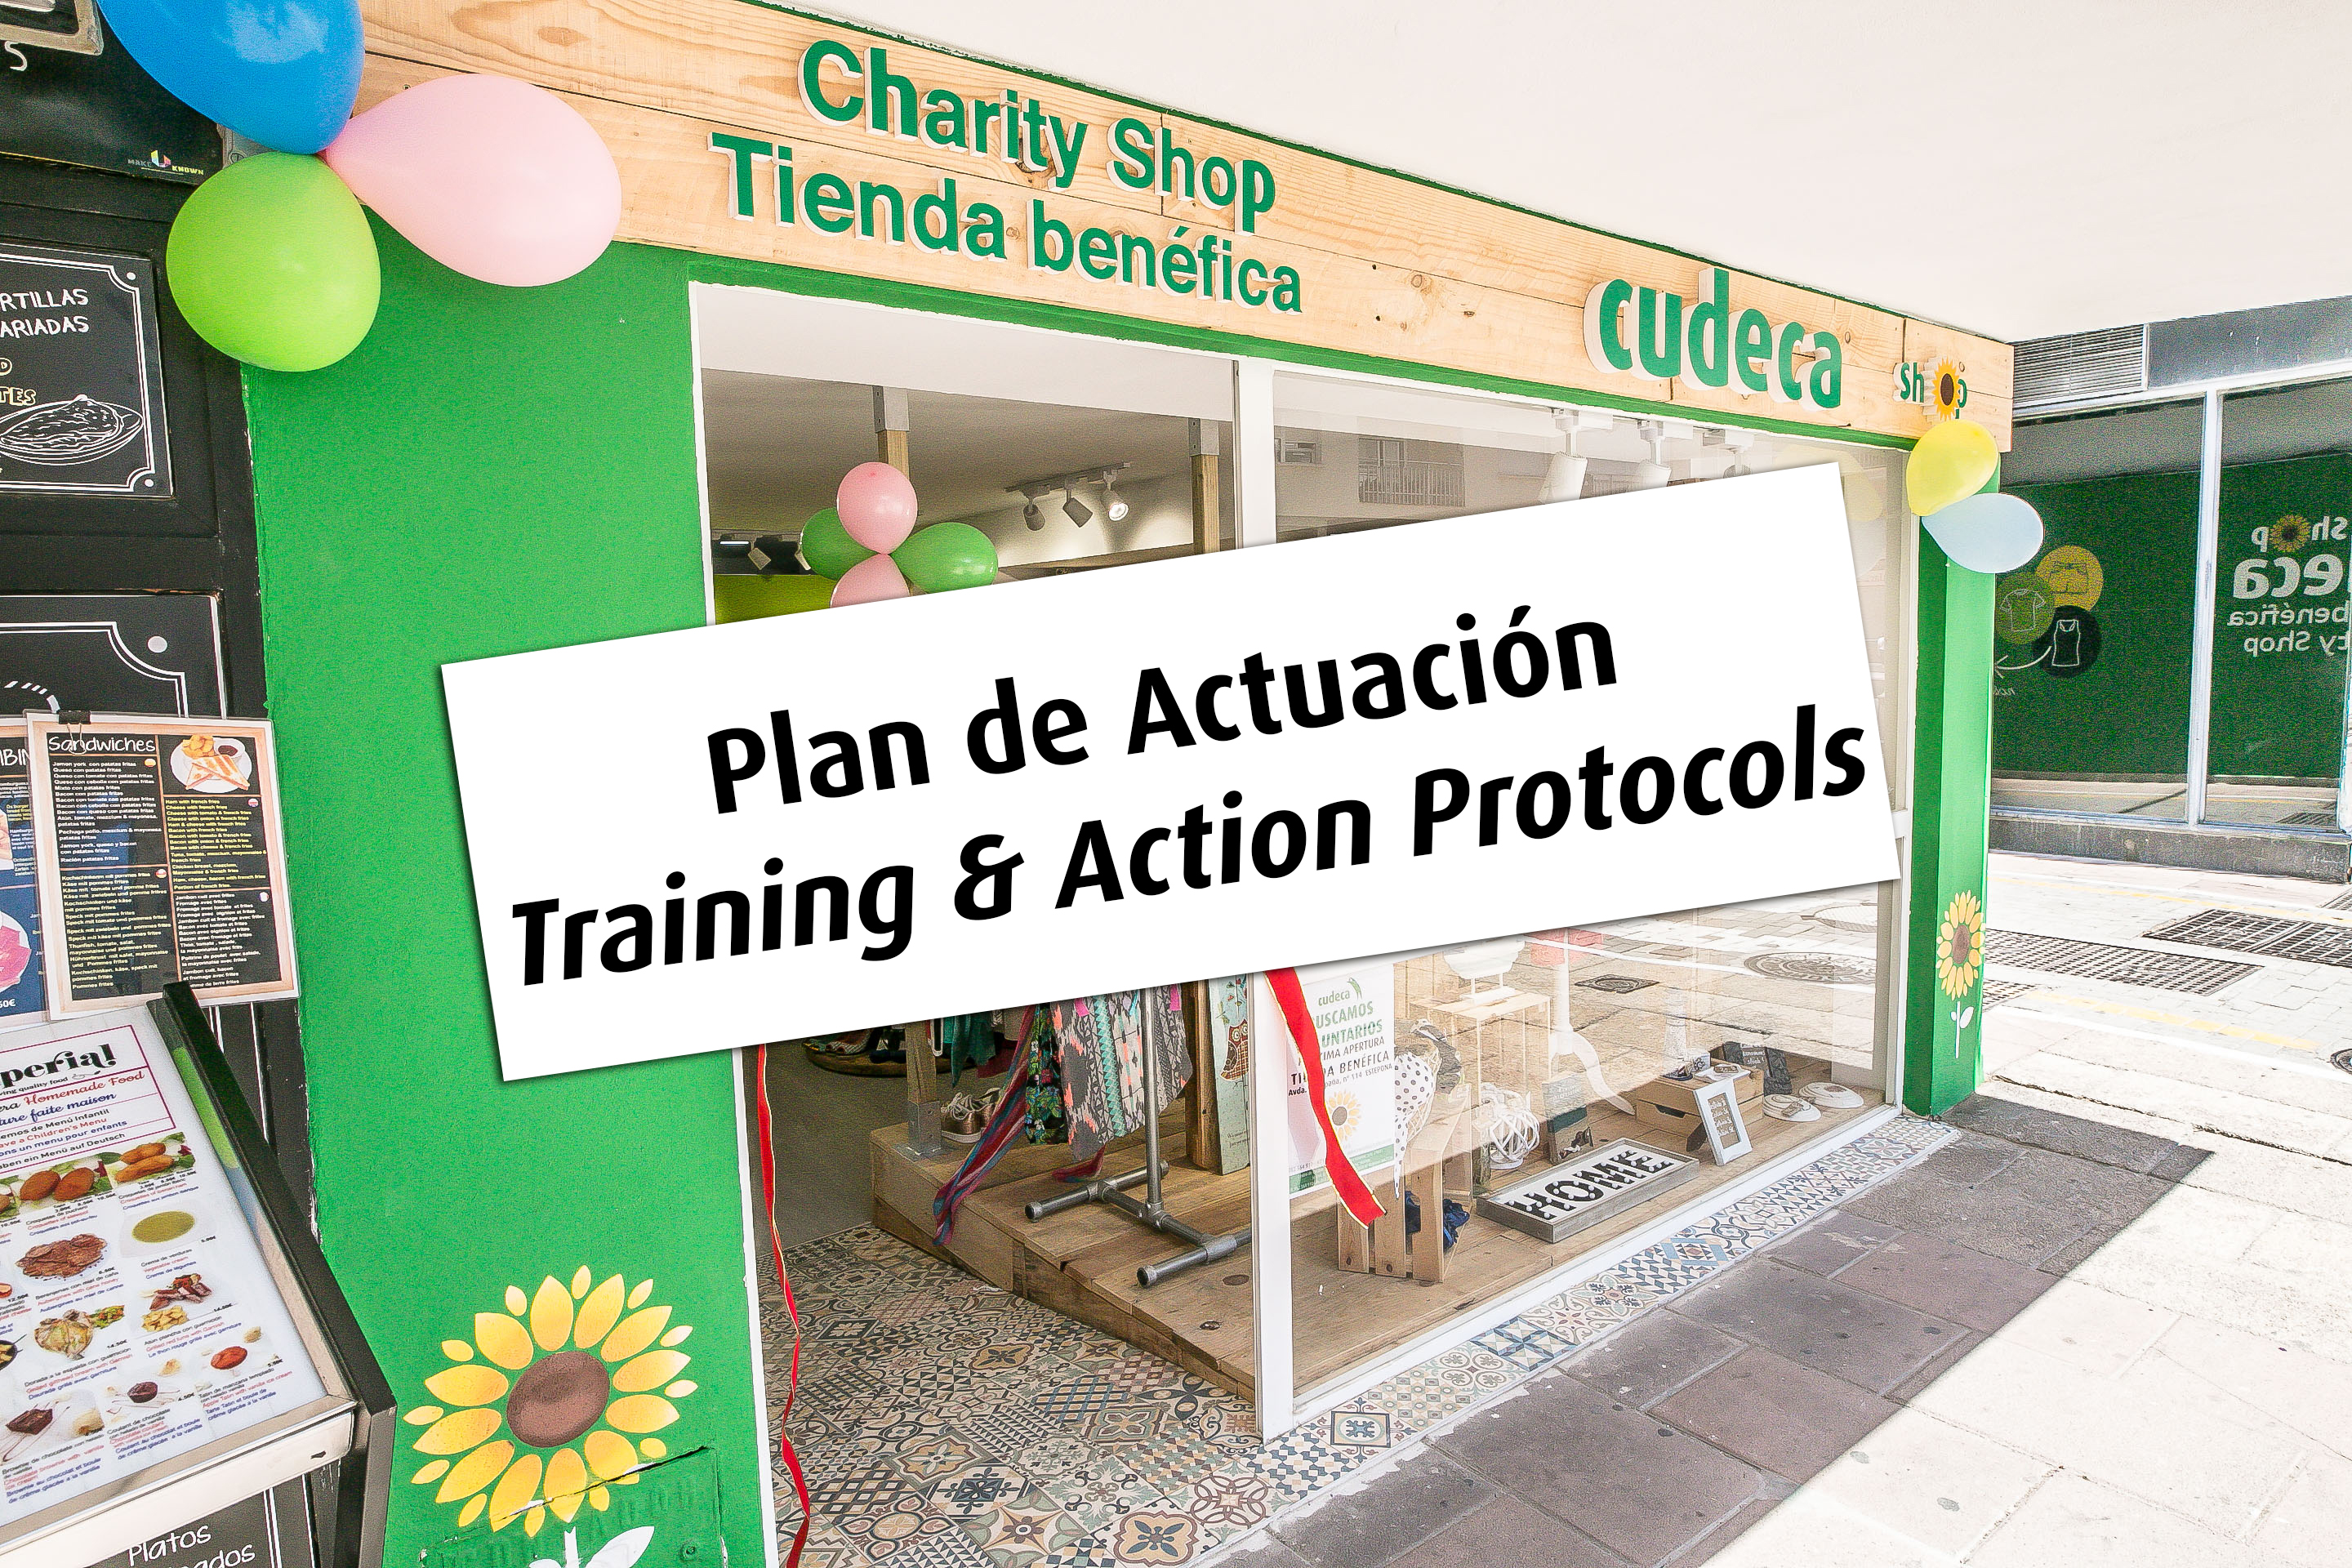 Training & Action Protocols for Cudeca Shops